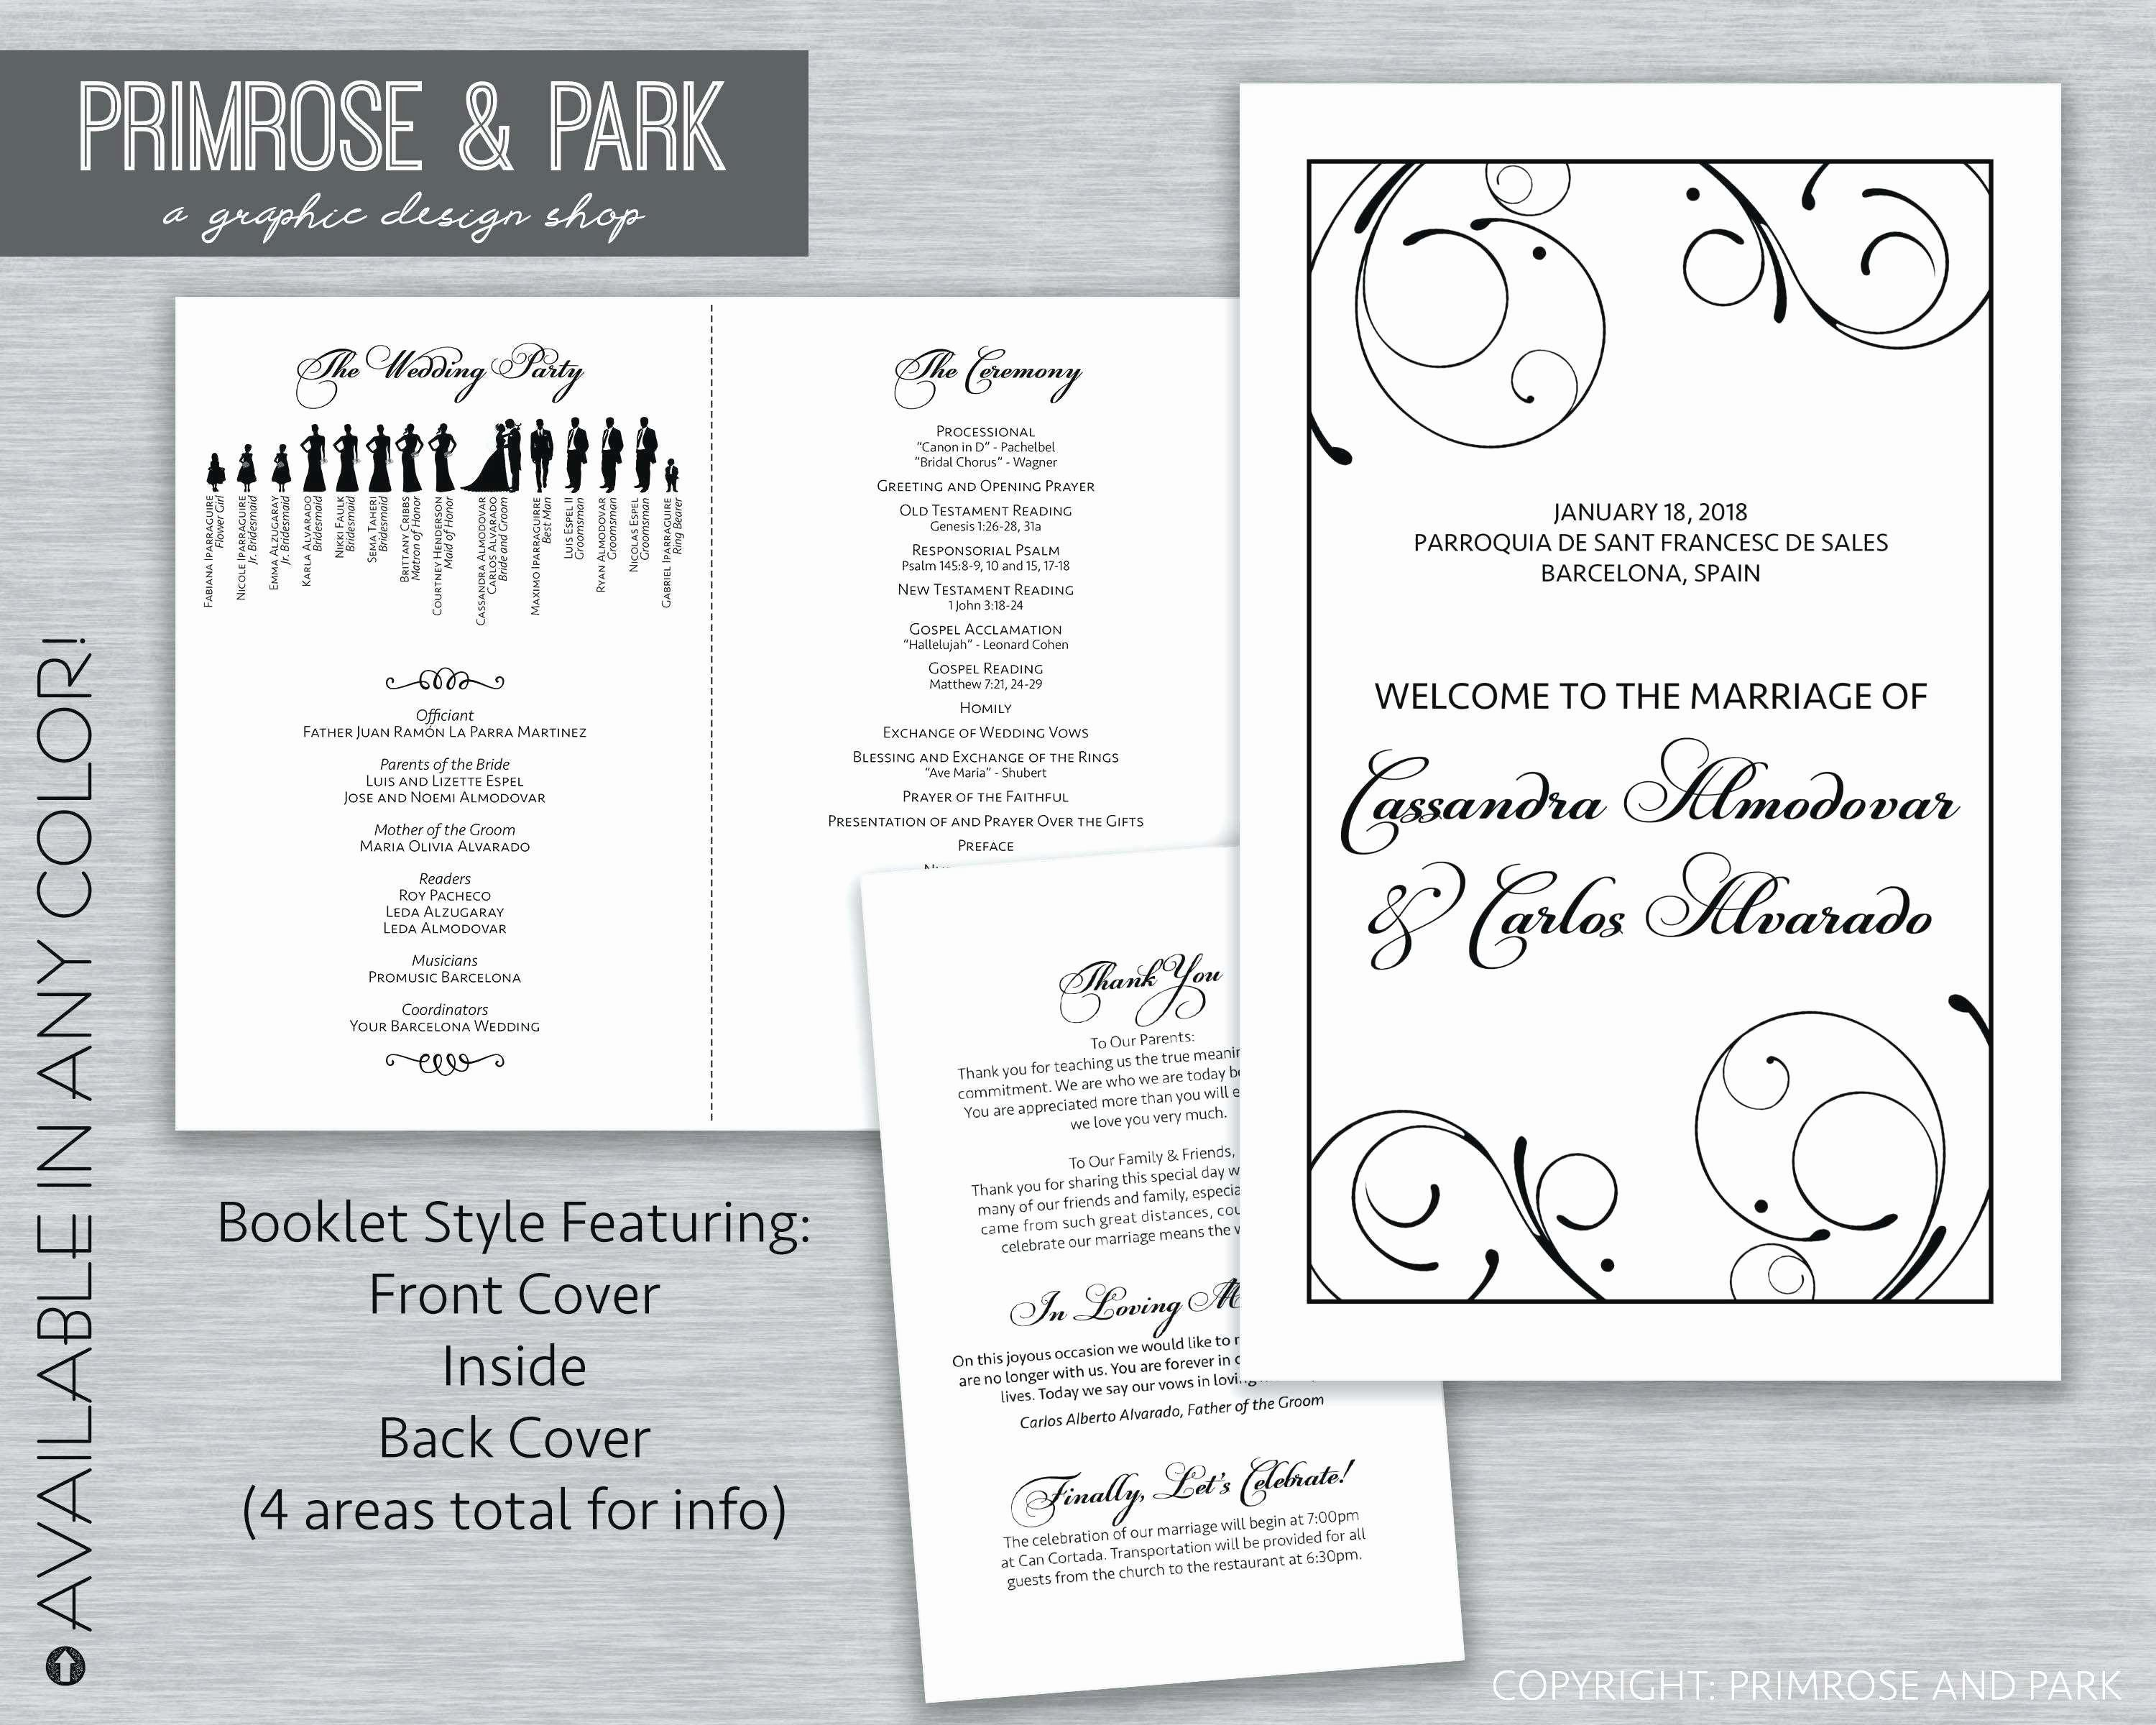 Wedding Program Template Free Printable Beautiful Awesome Free Printable Wedding Program Templates Microsoft